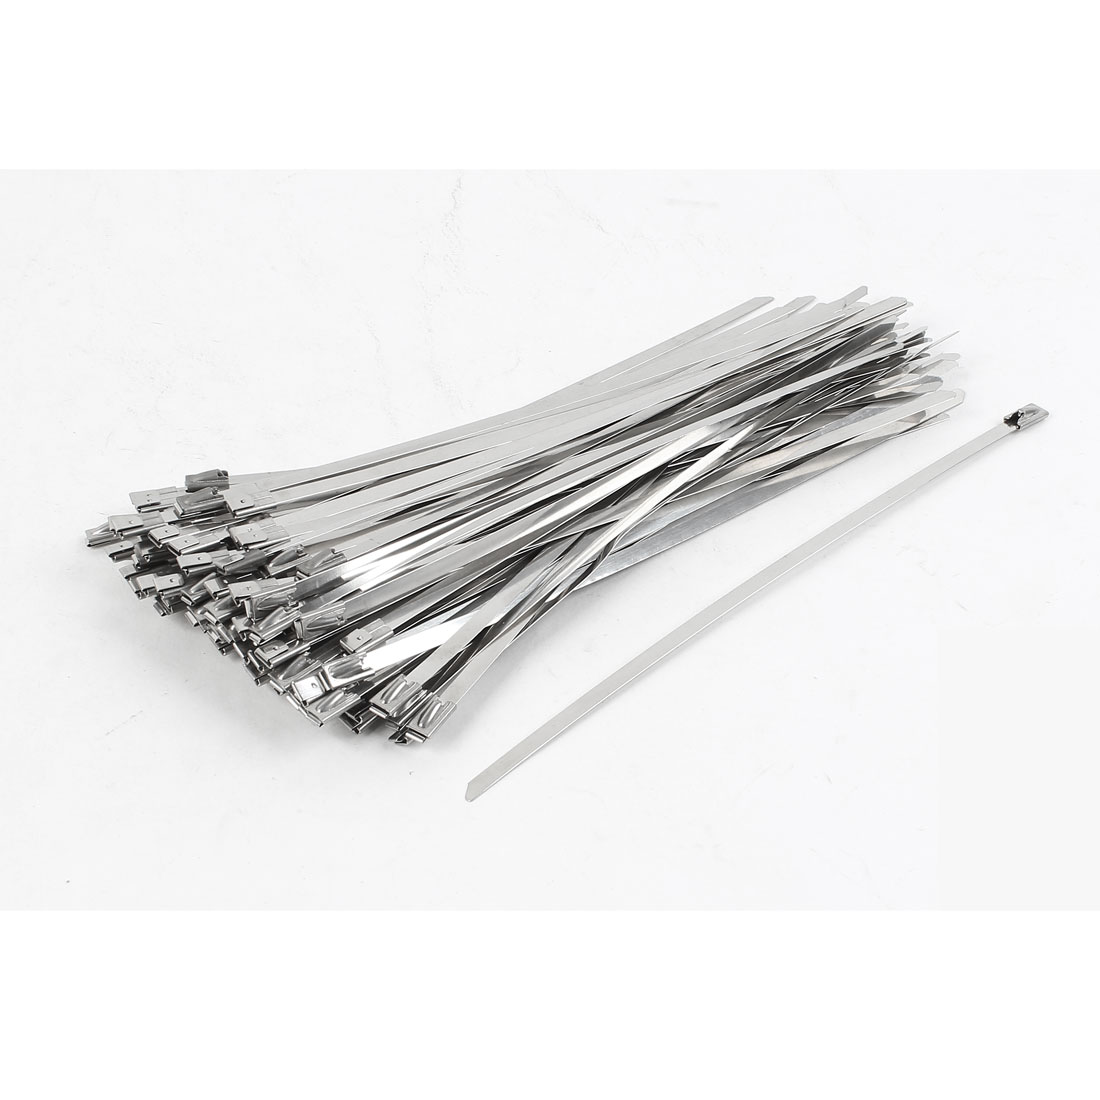 100Pcs Stainless Steel Coated Zip Cable Tie 200x4.6mm for Pipe Hose